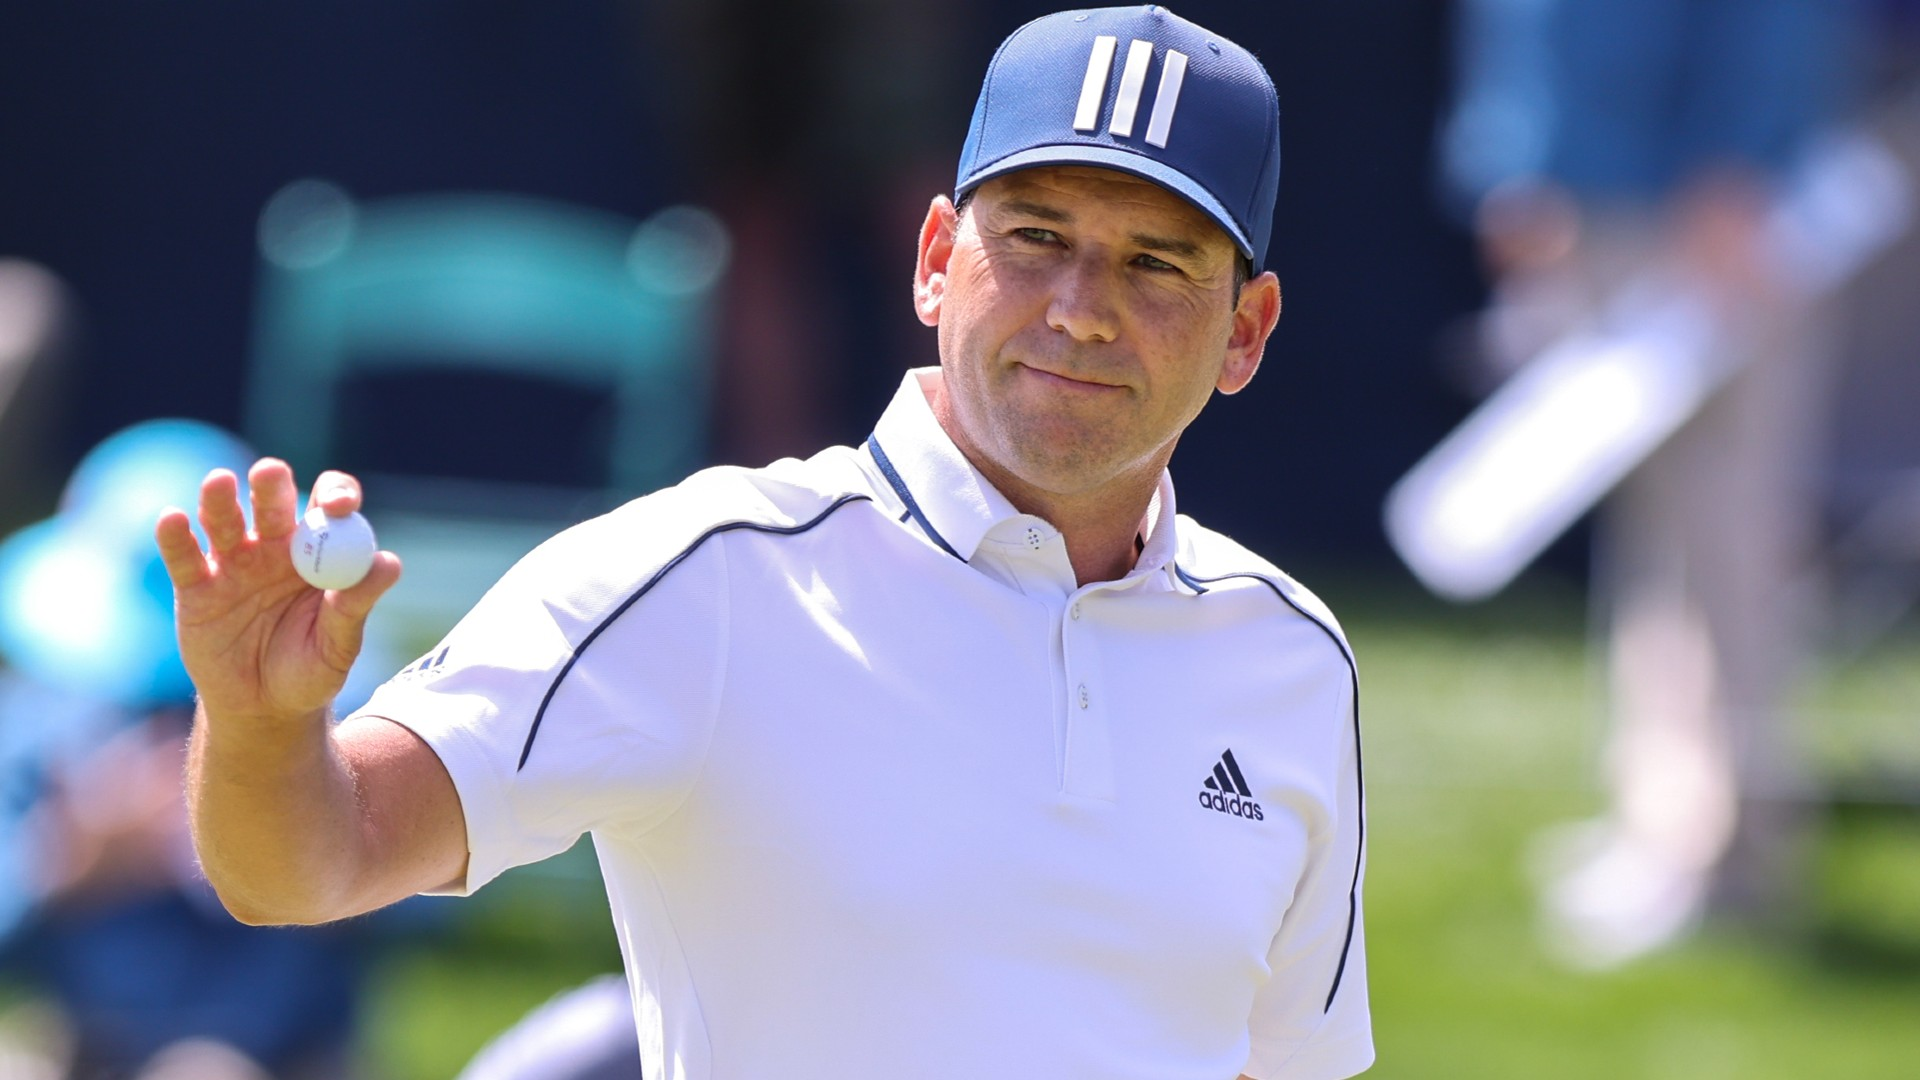 Garcia leads Players Championship as McIlroy has day to forget